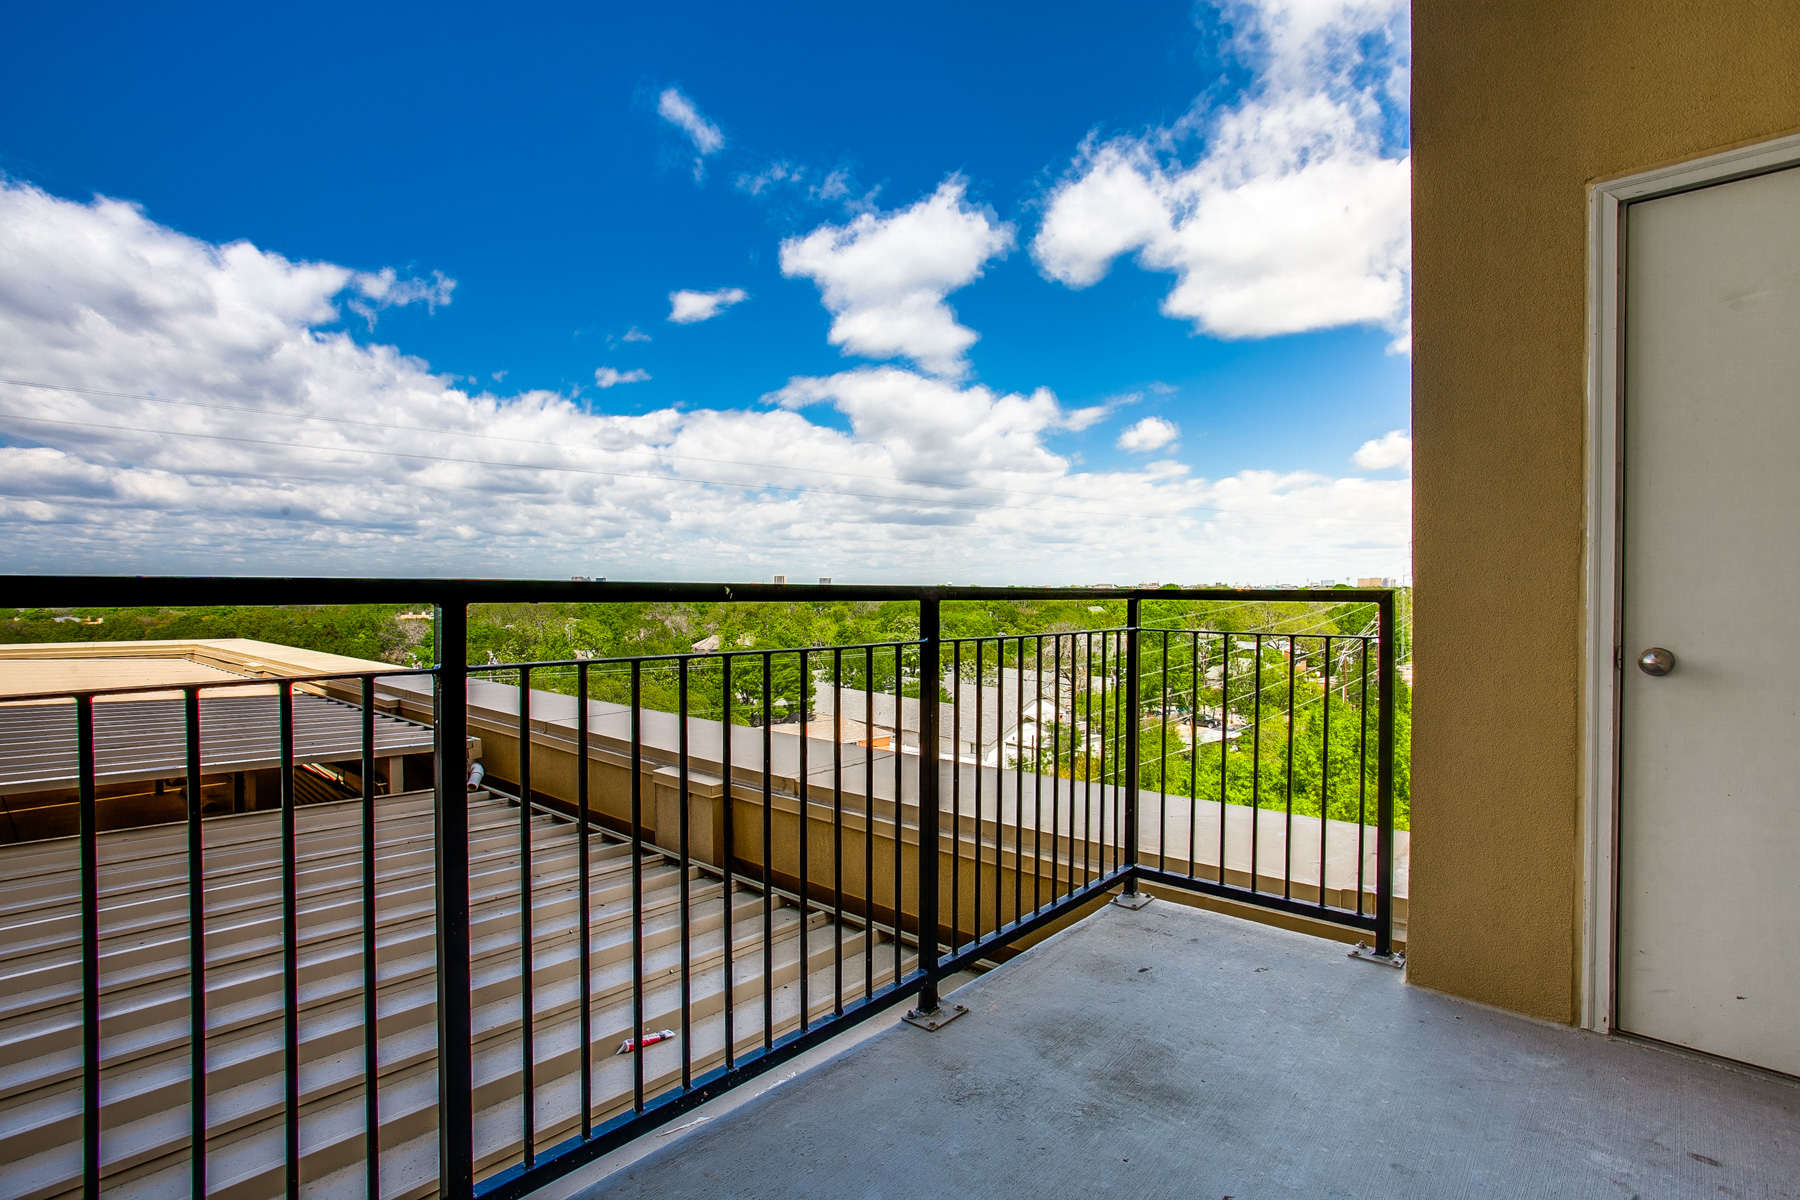 Additional photo for property listing at Beautiful High-Rise Condo Soaring Above Knox Street with Picturesque Views 4611 Travis Street #801B, Dallas, Texas 75205 United States